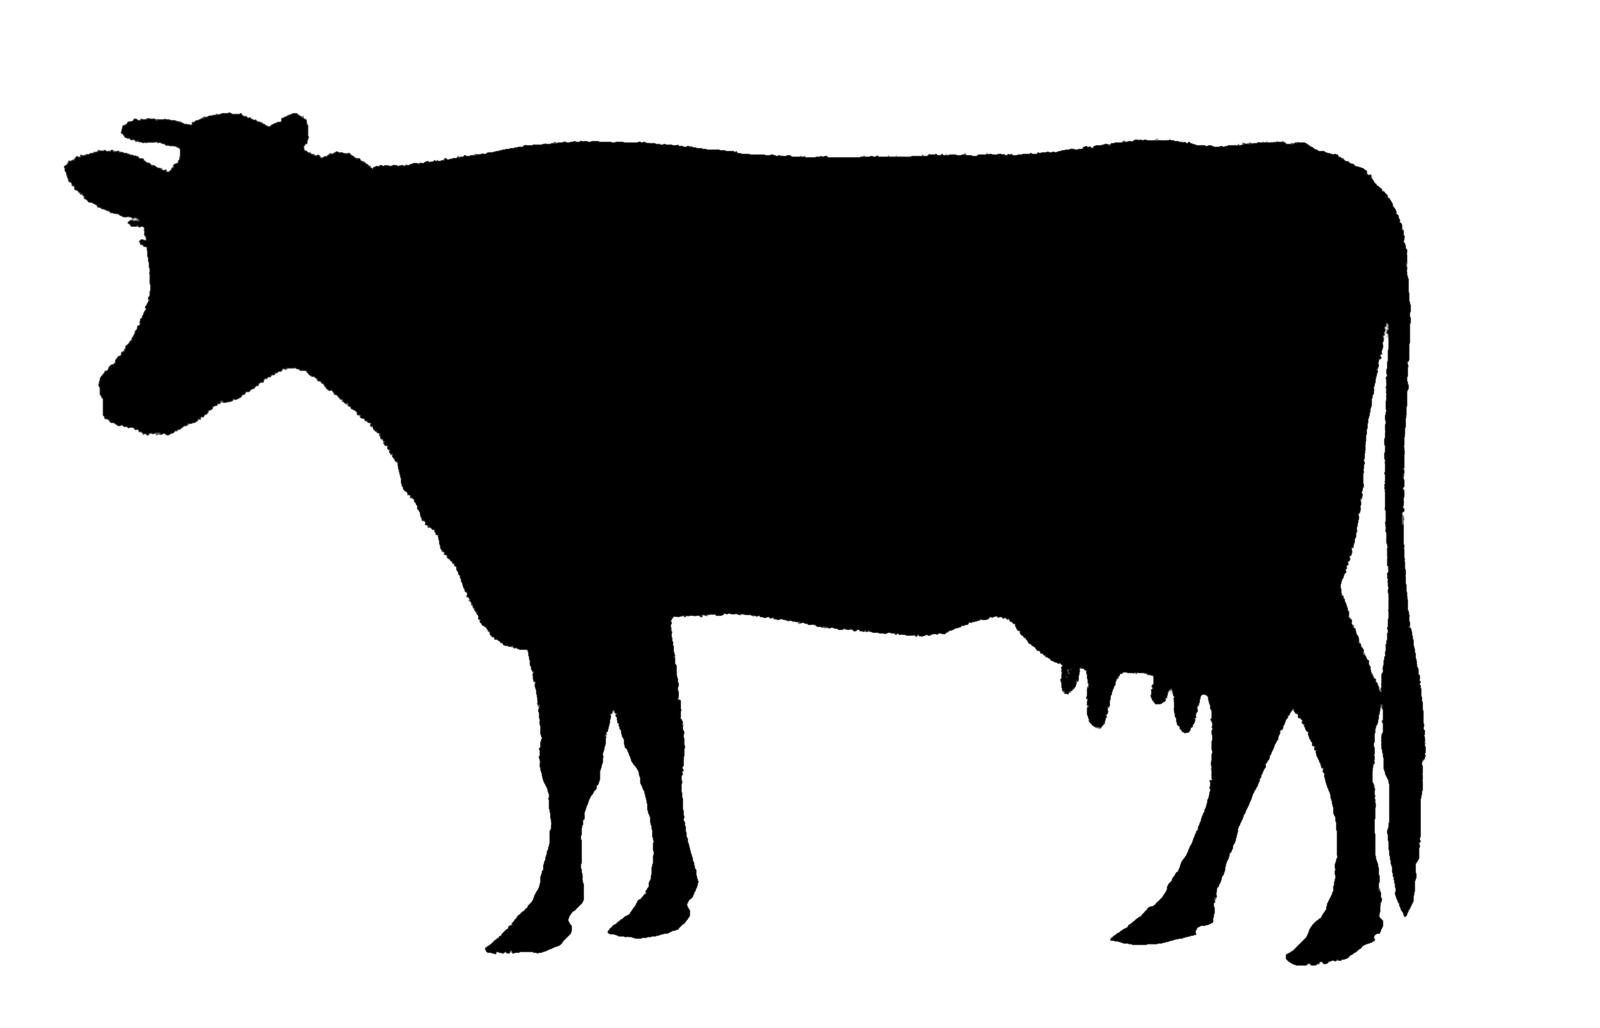 Pin by Rulochampak on good beef | Animal silhouette, Silhouette art, Cow  pictures